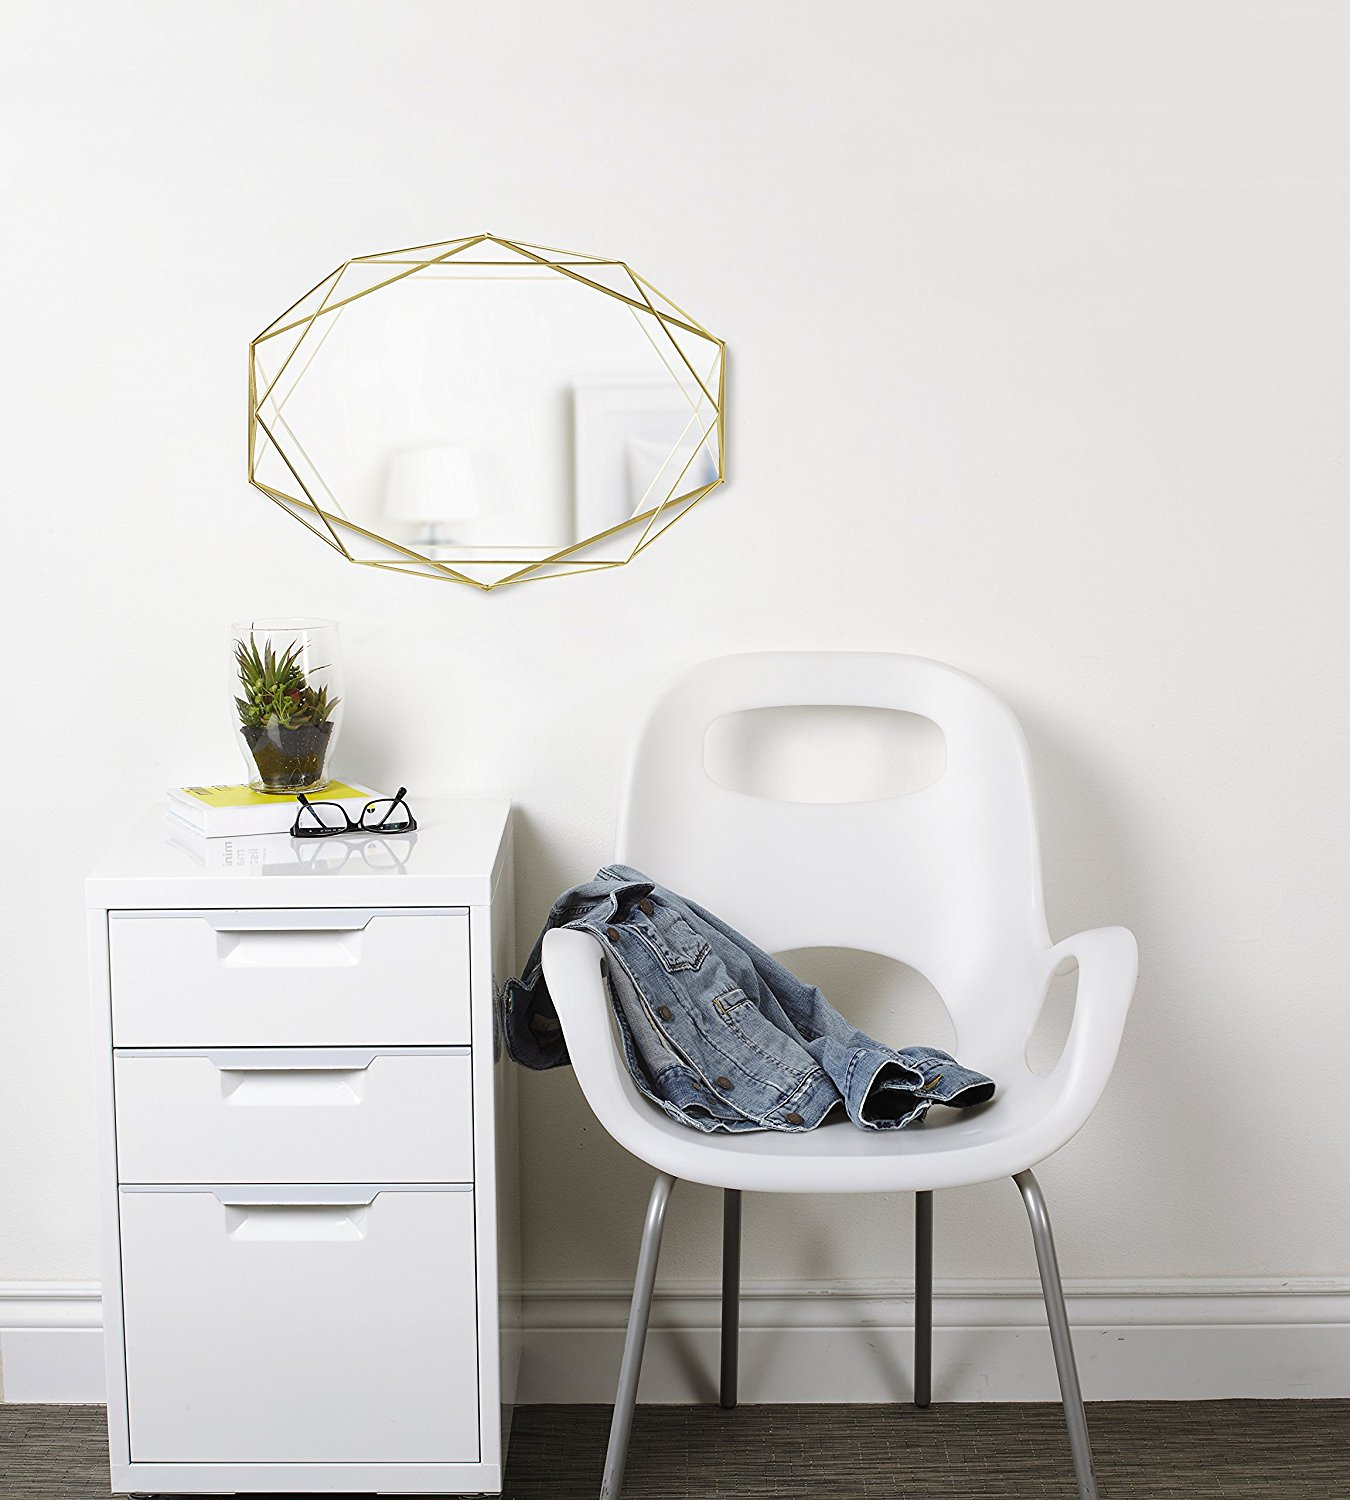 Umbra Prism Wall Mirror